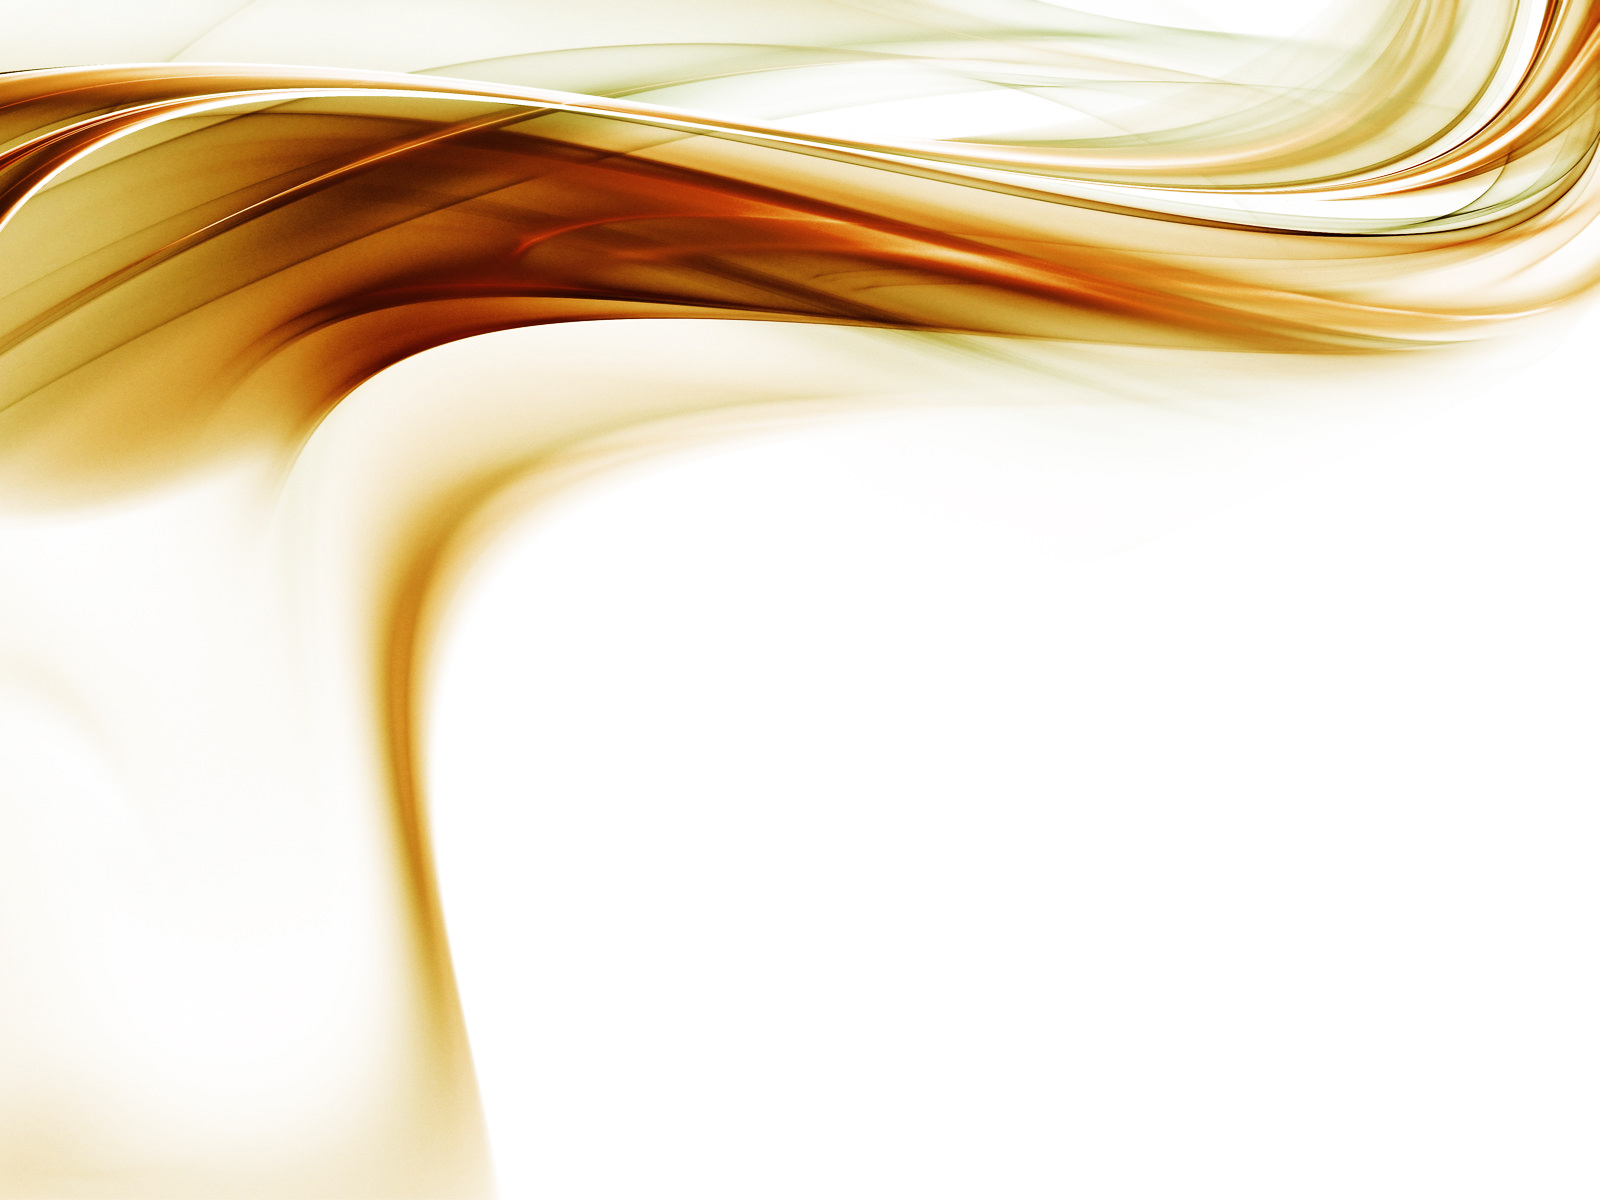 gold abstract wallpaper wch7i - photo #13